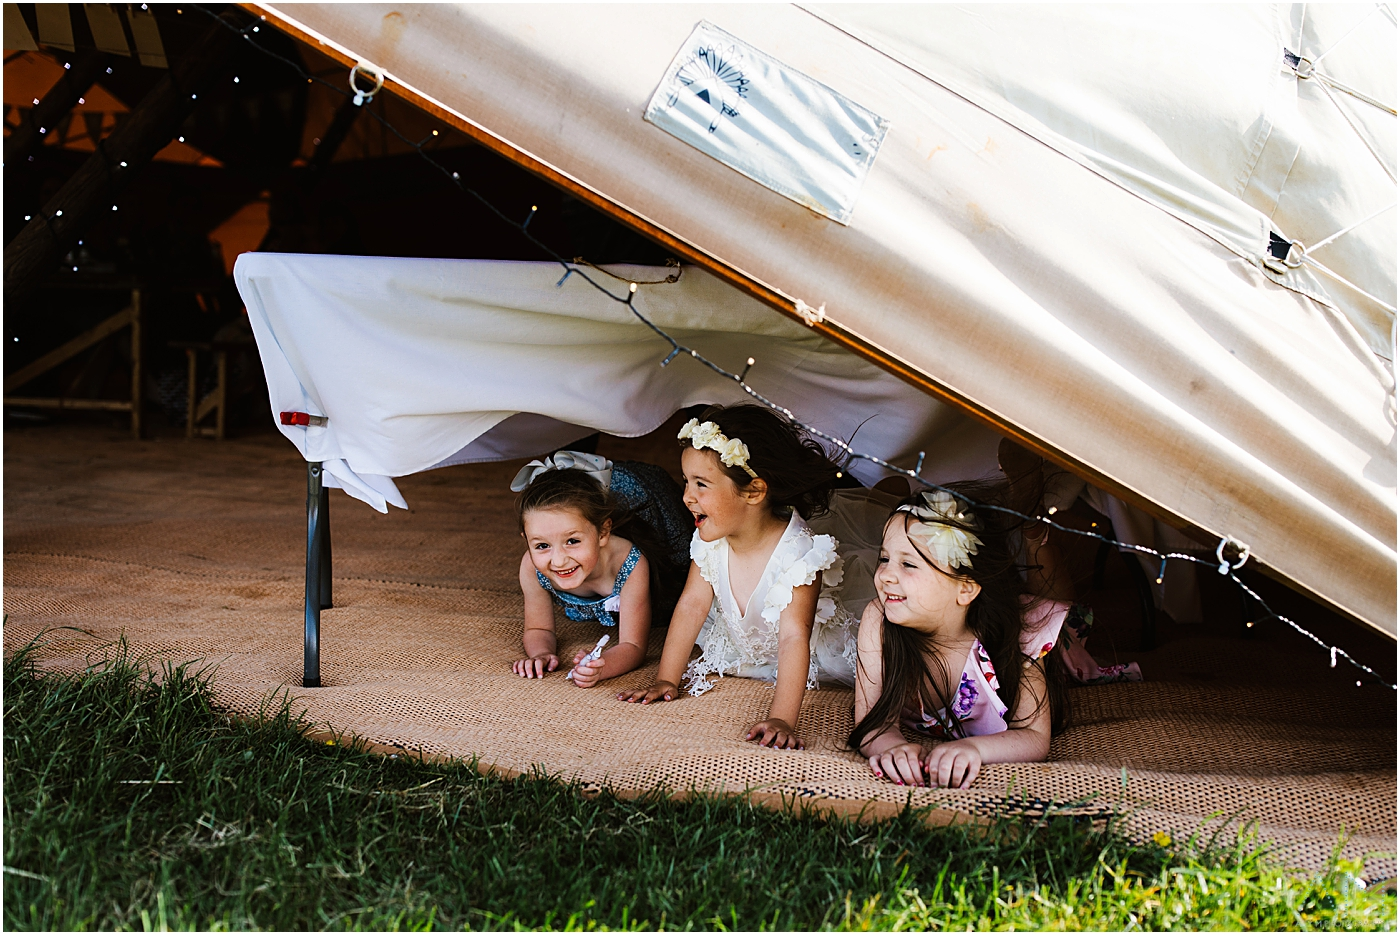 Children hiding under the teepee at new hill farm stud in manchester